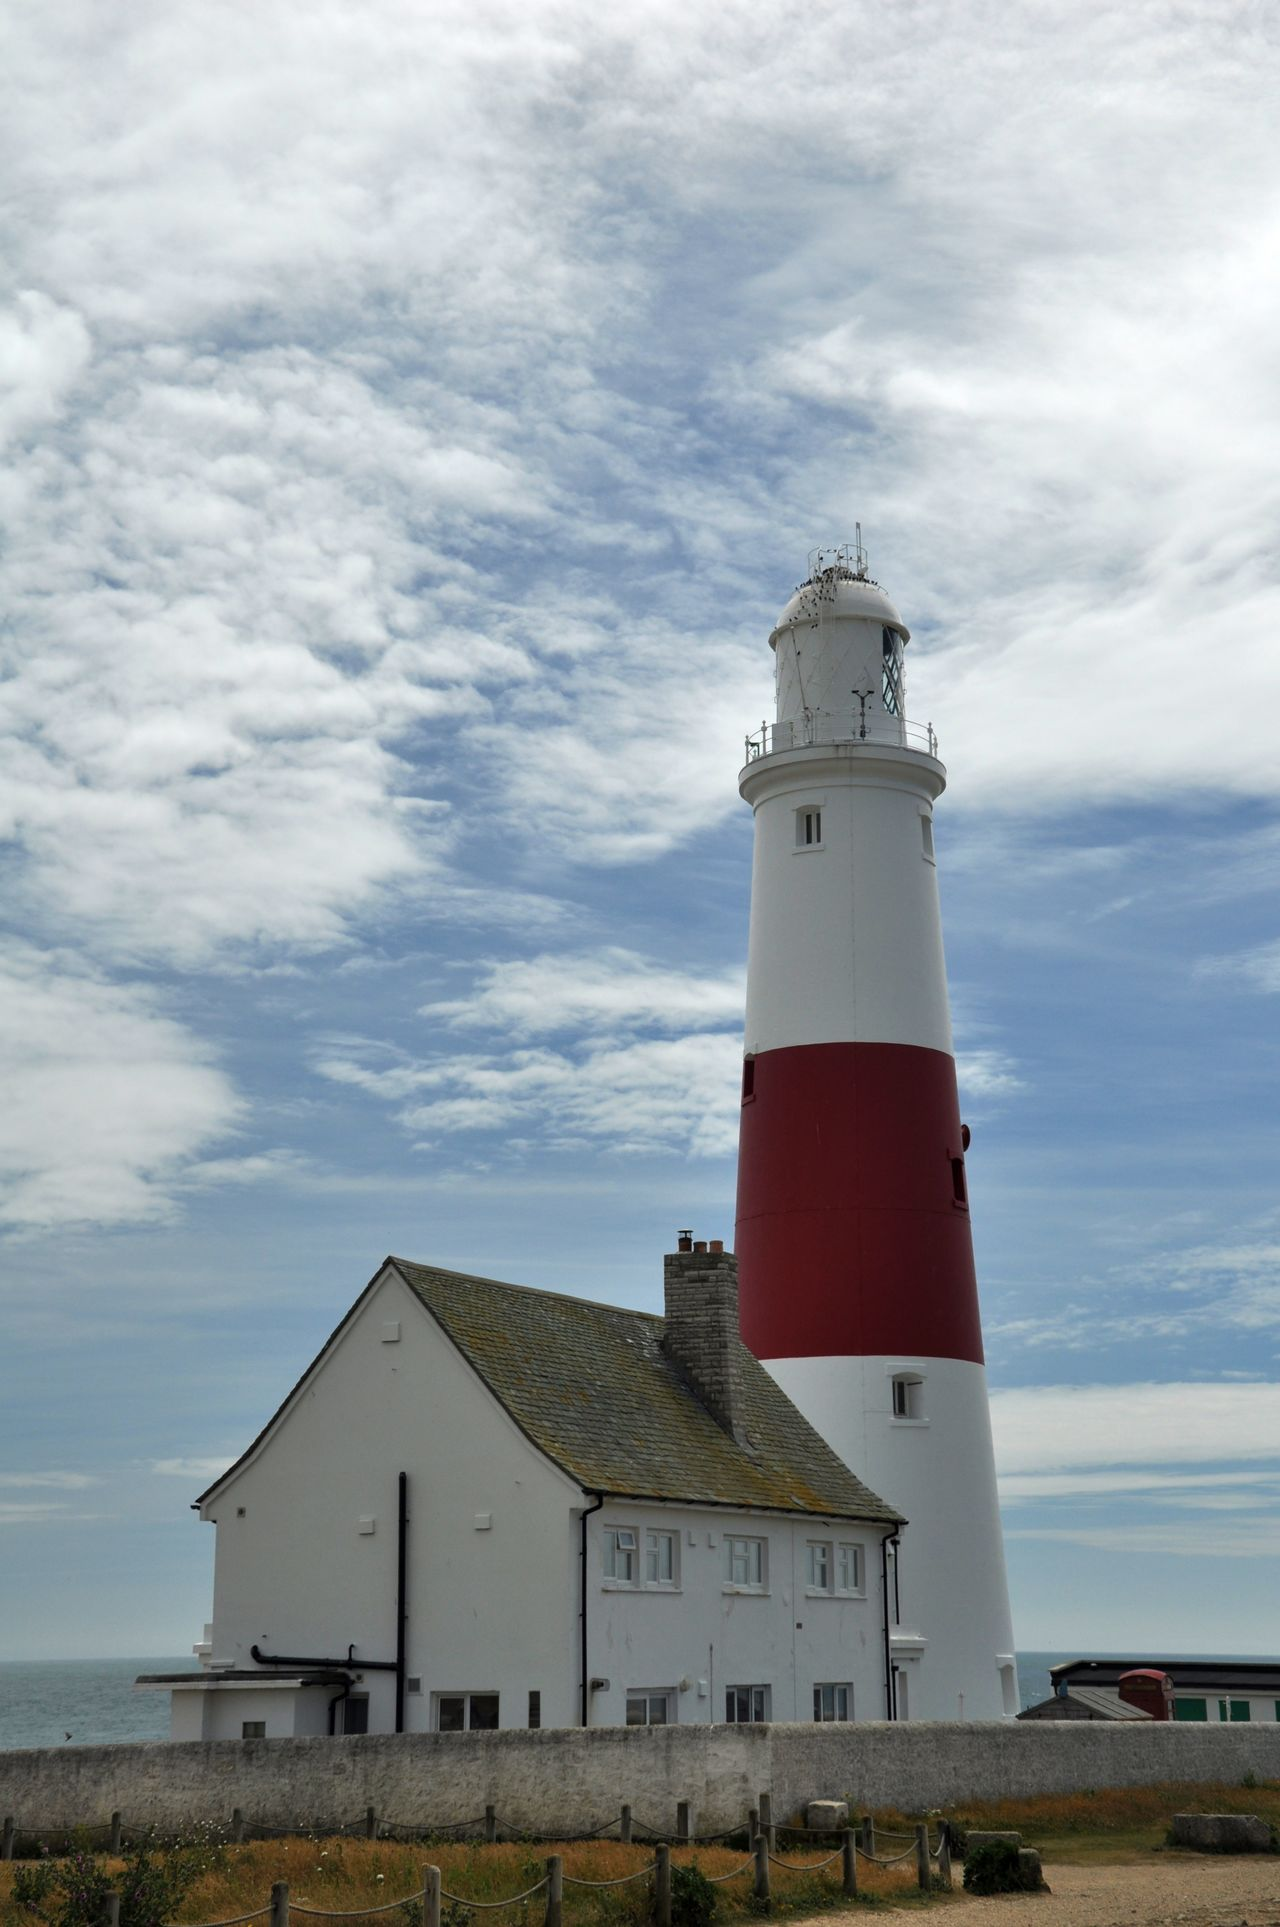 Lighthouse in Portland Bill Architecture Guidance Lighthouse Lighthouse Lighthouse Cottage In Portland  Red And White Tower